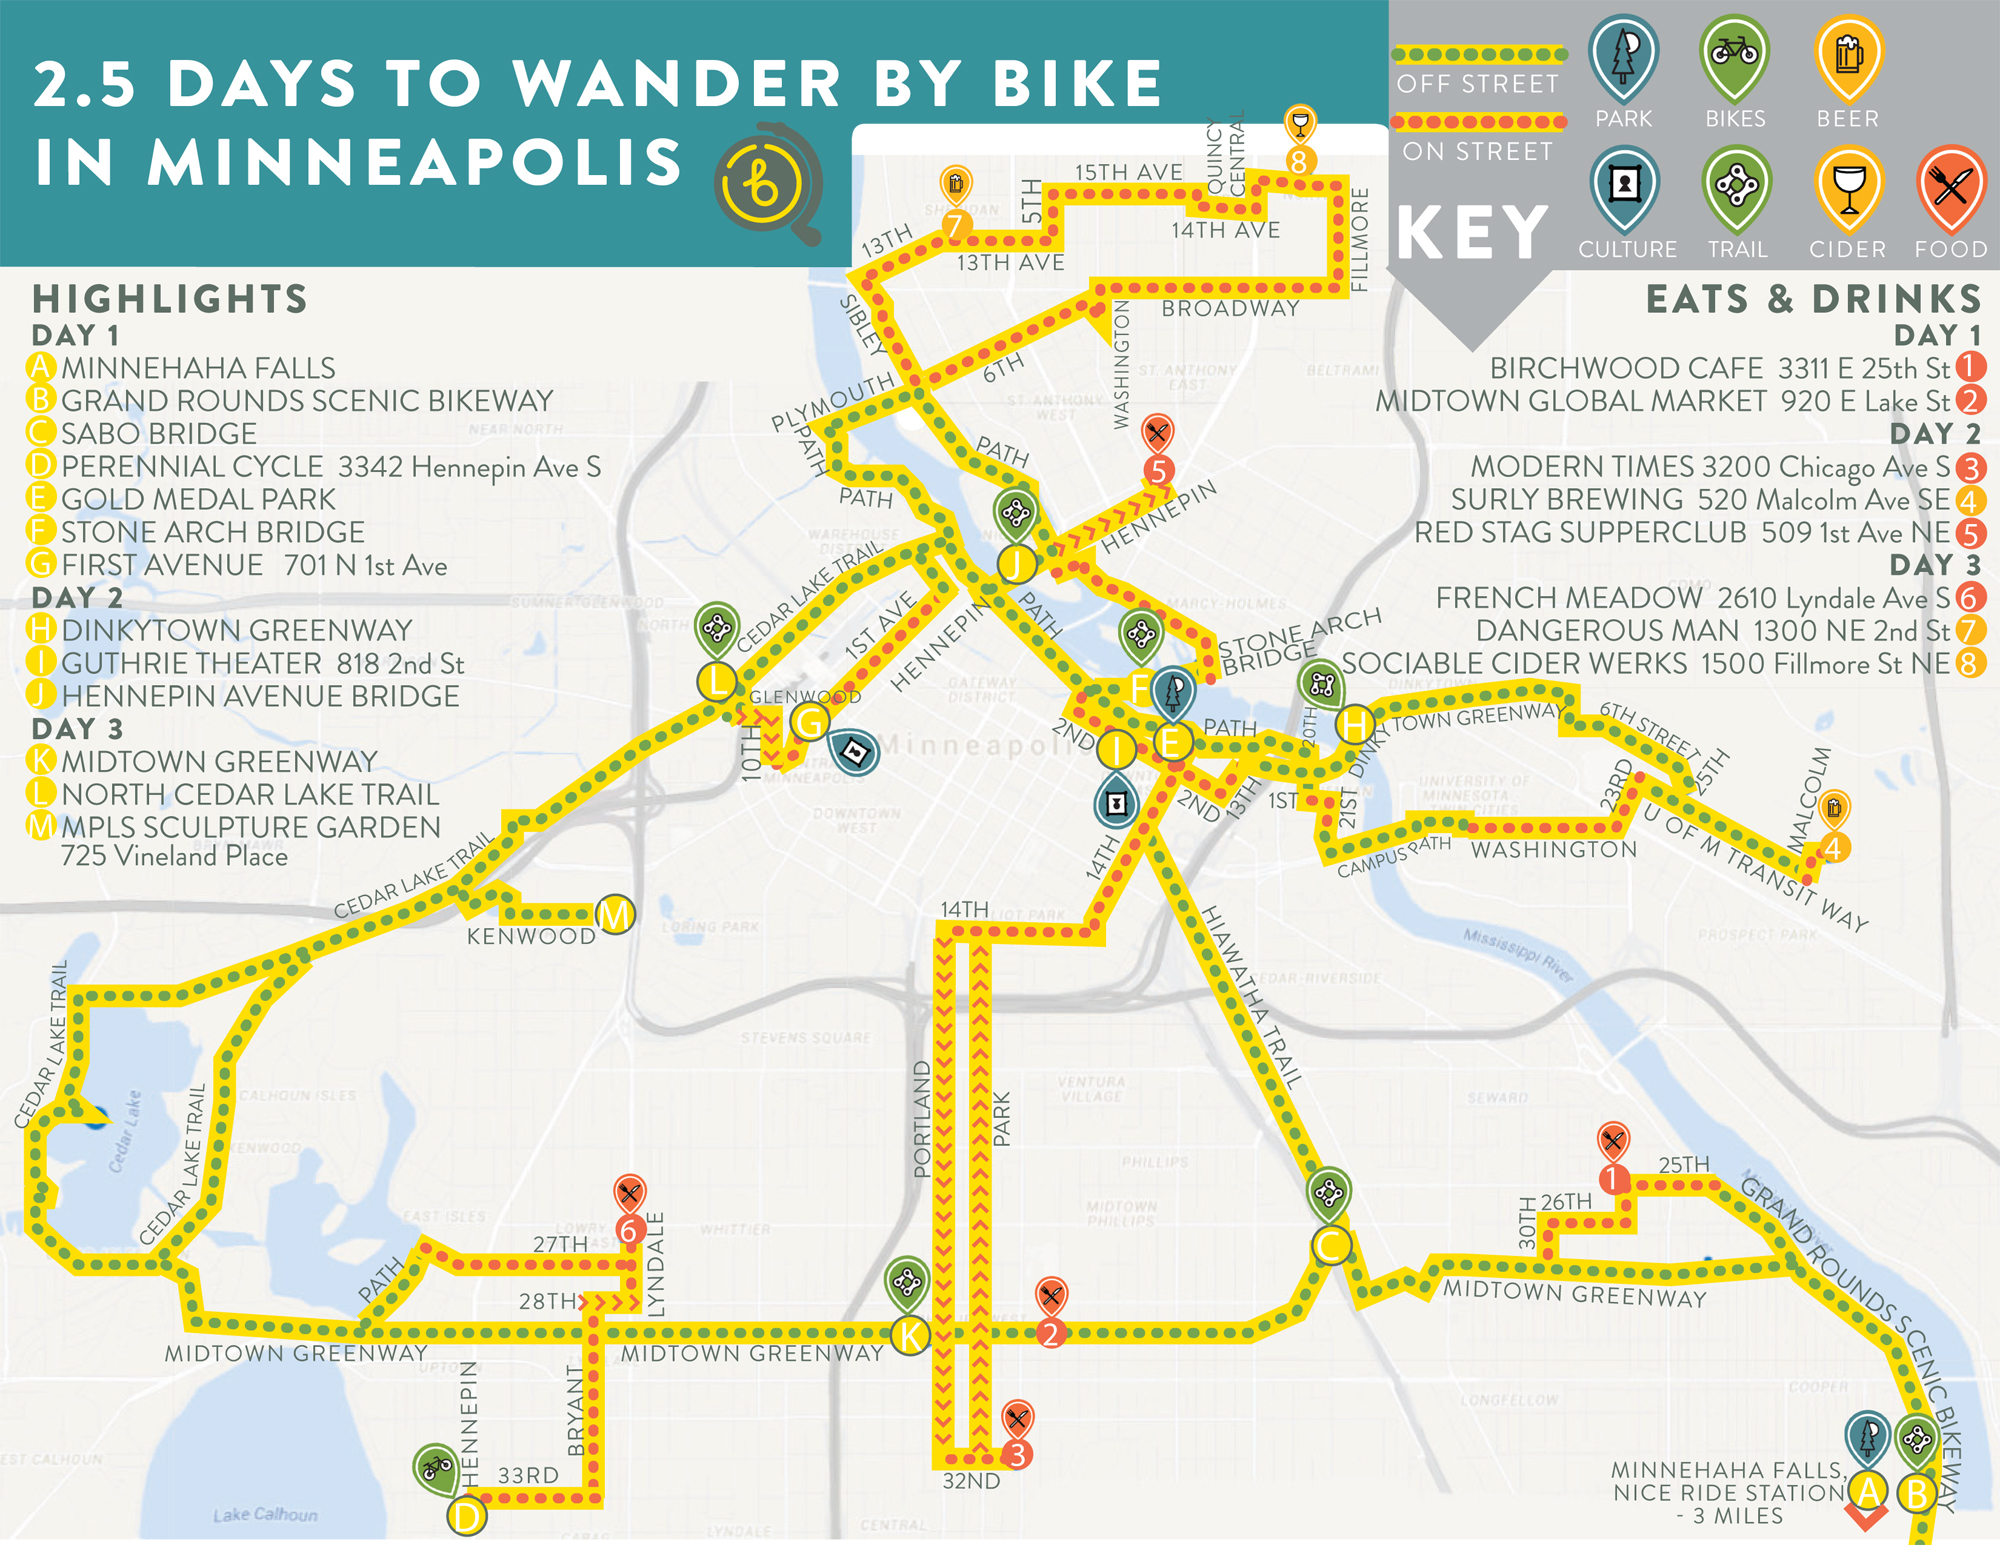 2.5 Days to Wander by Bike in Minneapolis — bikabout Map Of Mn Bicycle Trails on central minnesota bike trails, map of camp croft, map of preston minnesota, seabrook island sc bike trails, map of 3m maplewood, map of hilton head sea pines resort, houston bike trails, map of minneapolis green bikes,